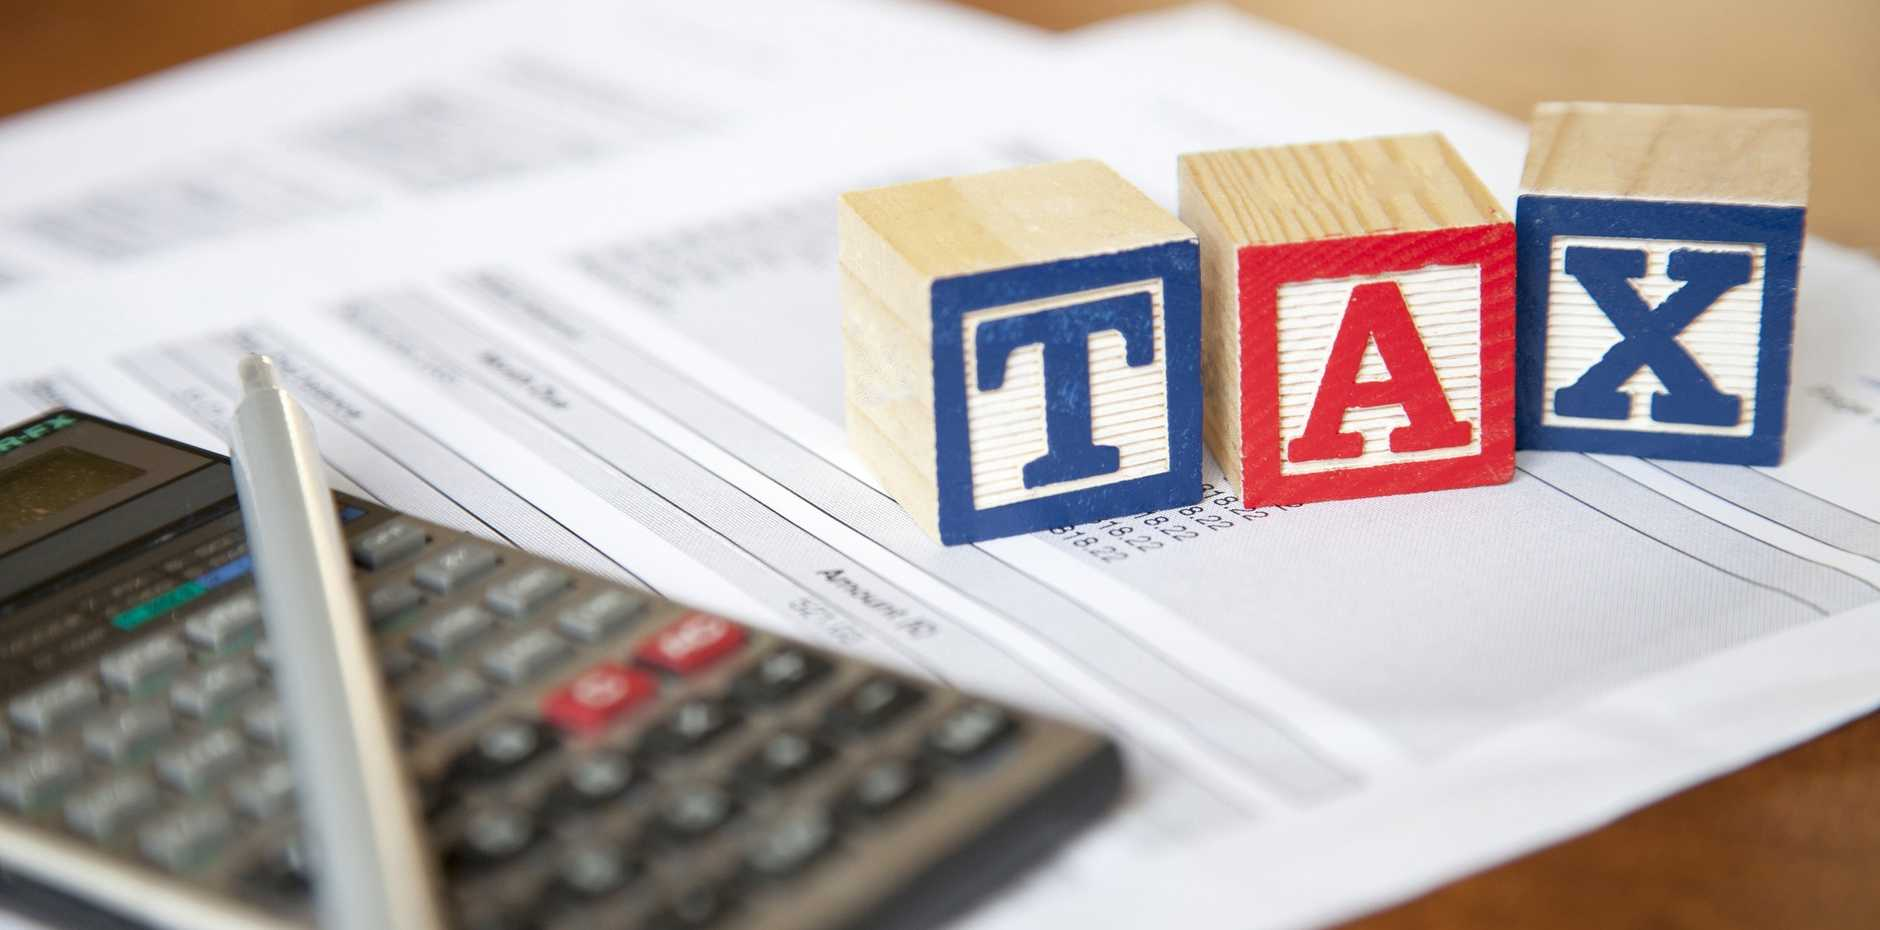 FINANCE ADVICE: You are not obliged to lodge a tax return if you meet this criteria